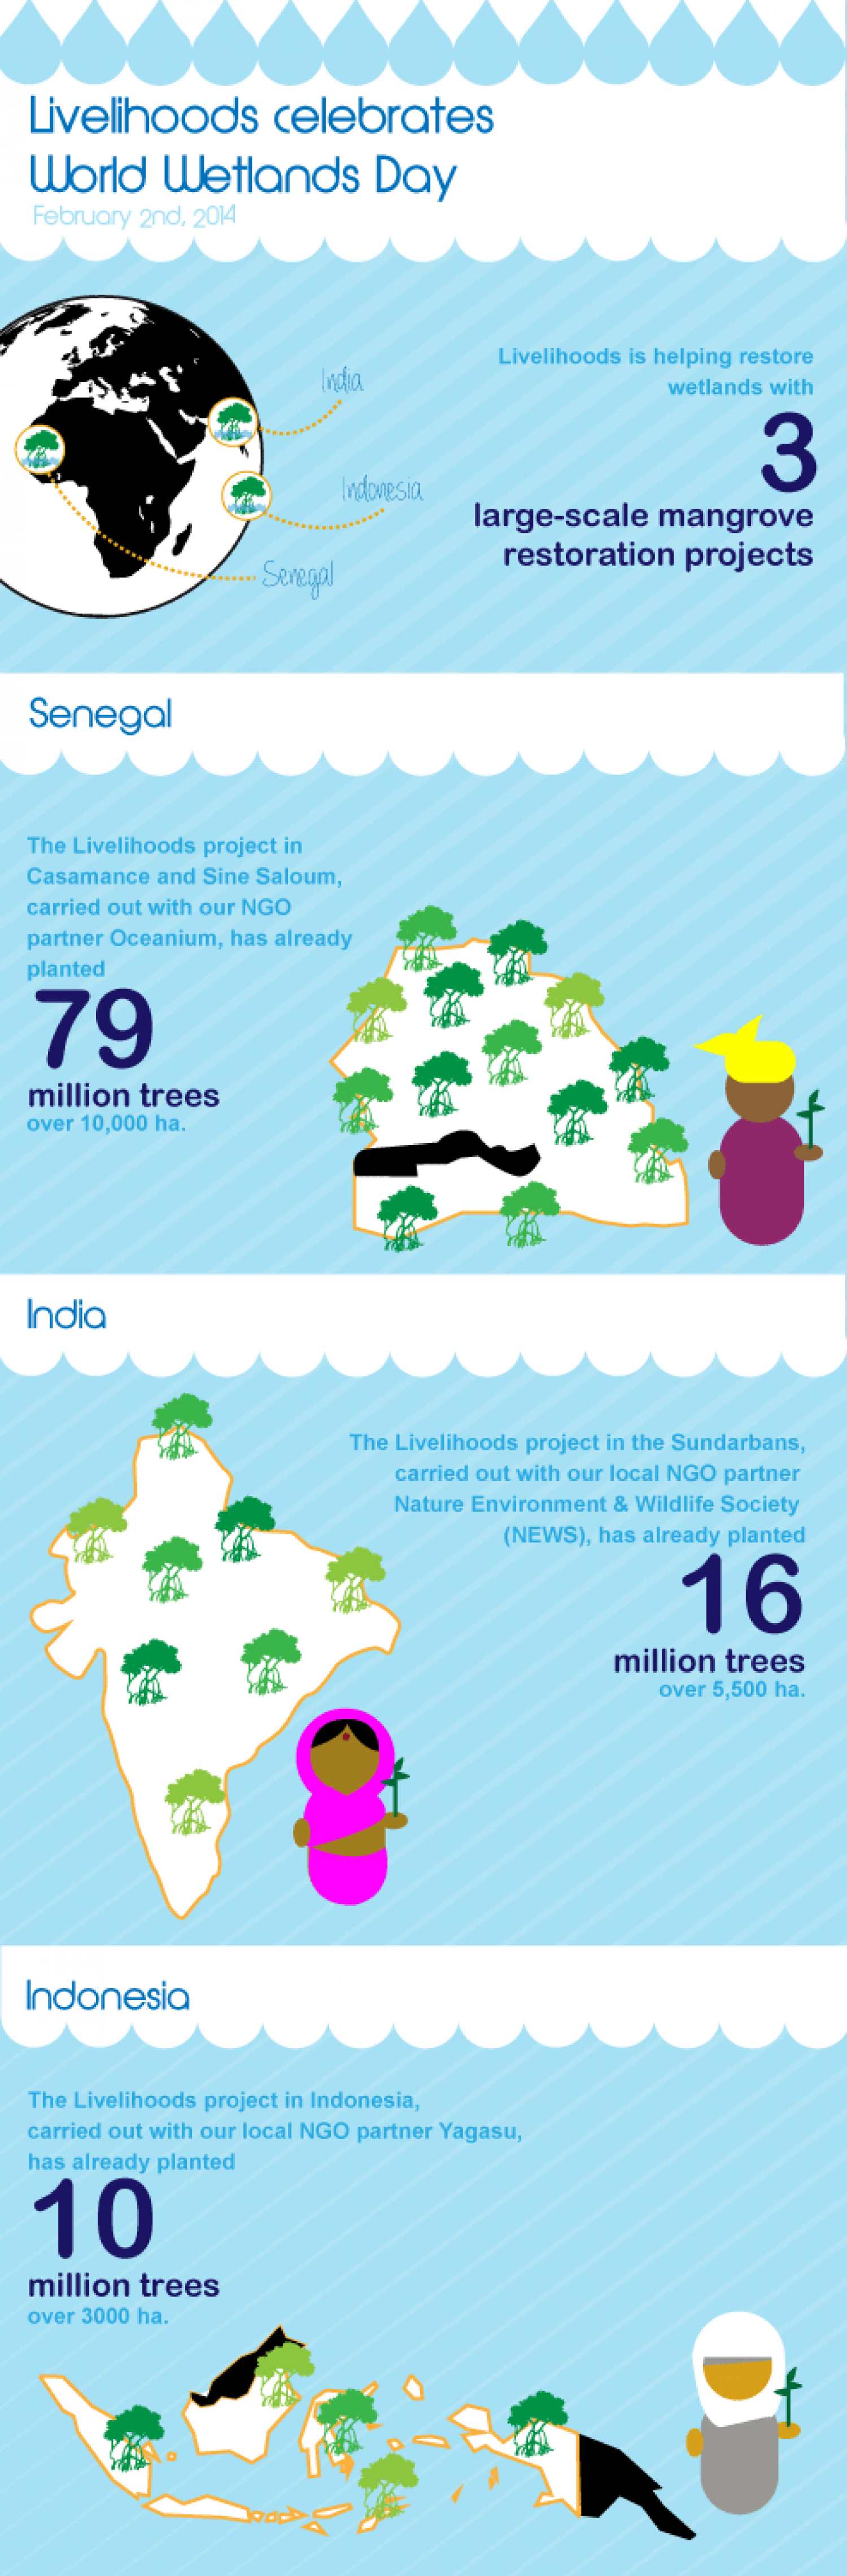 Livelihoods celebrates World Wetlands Day Infographic